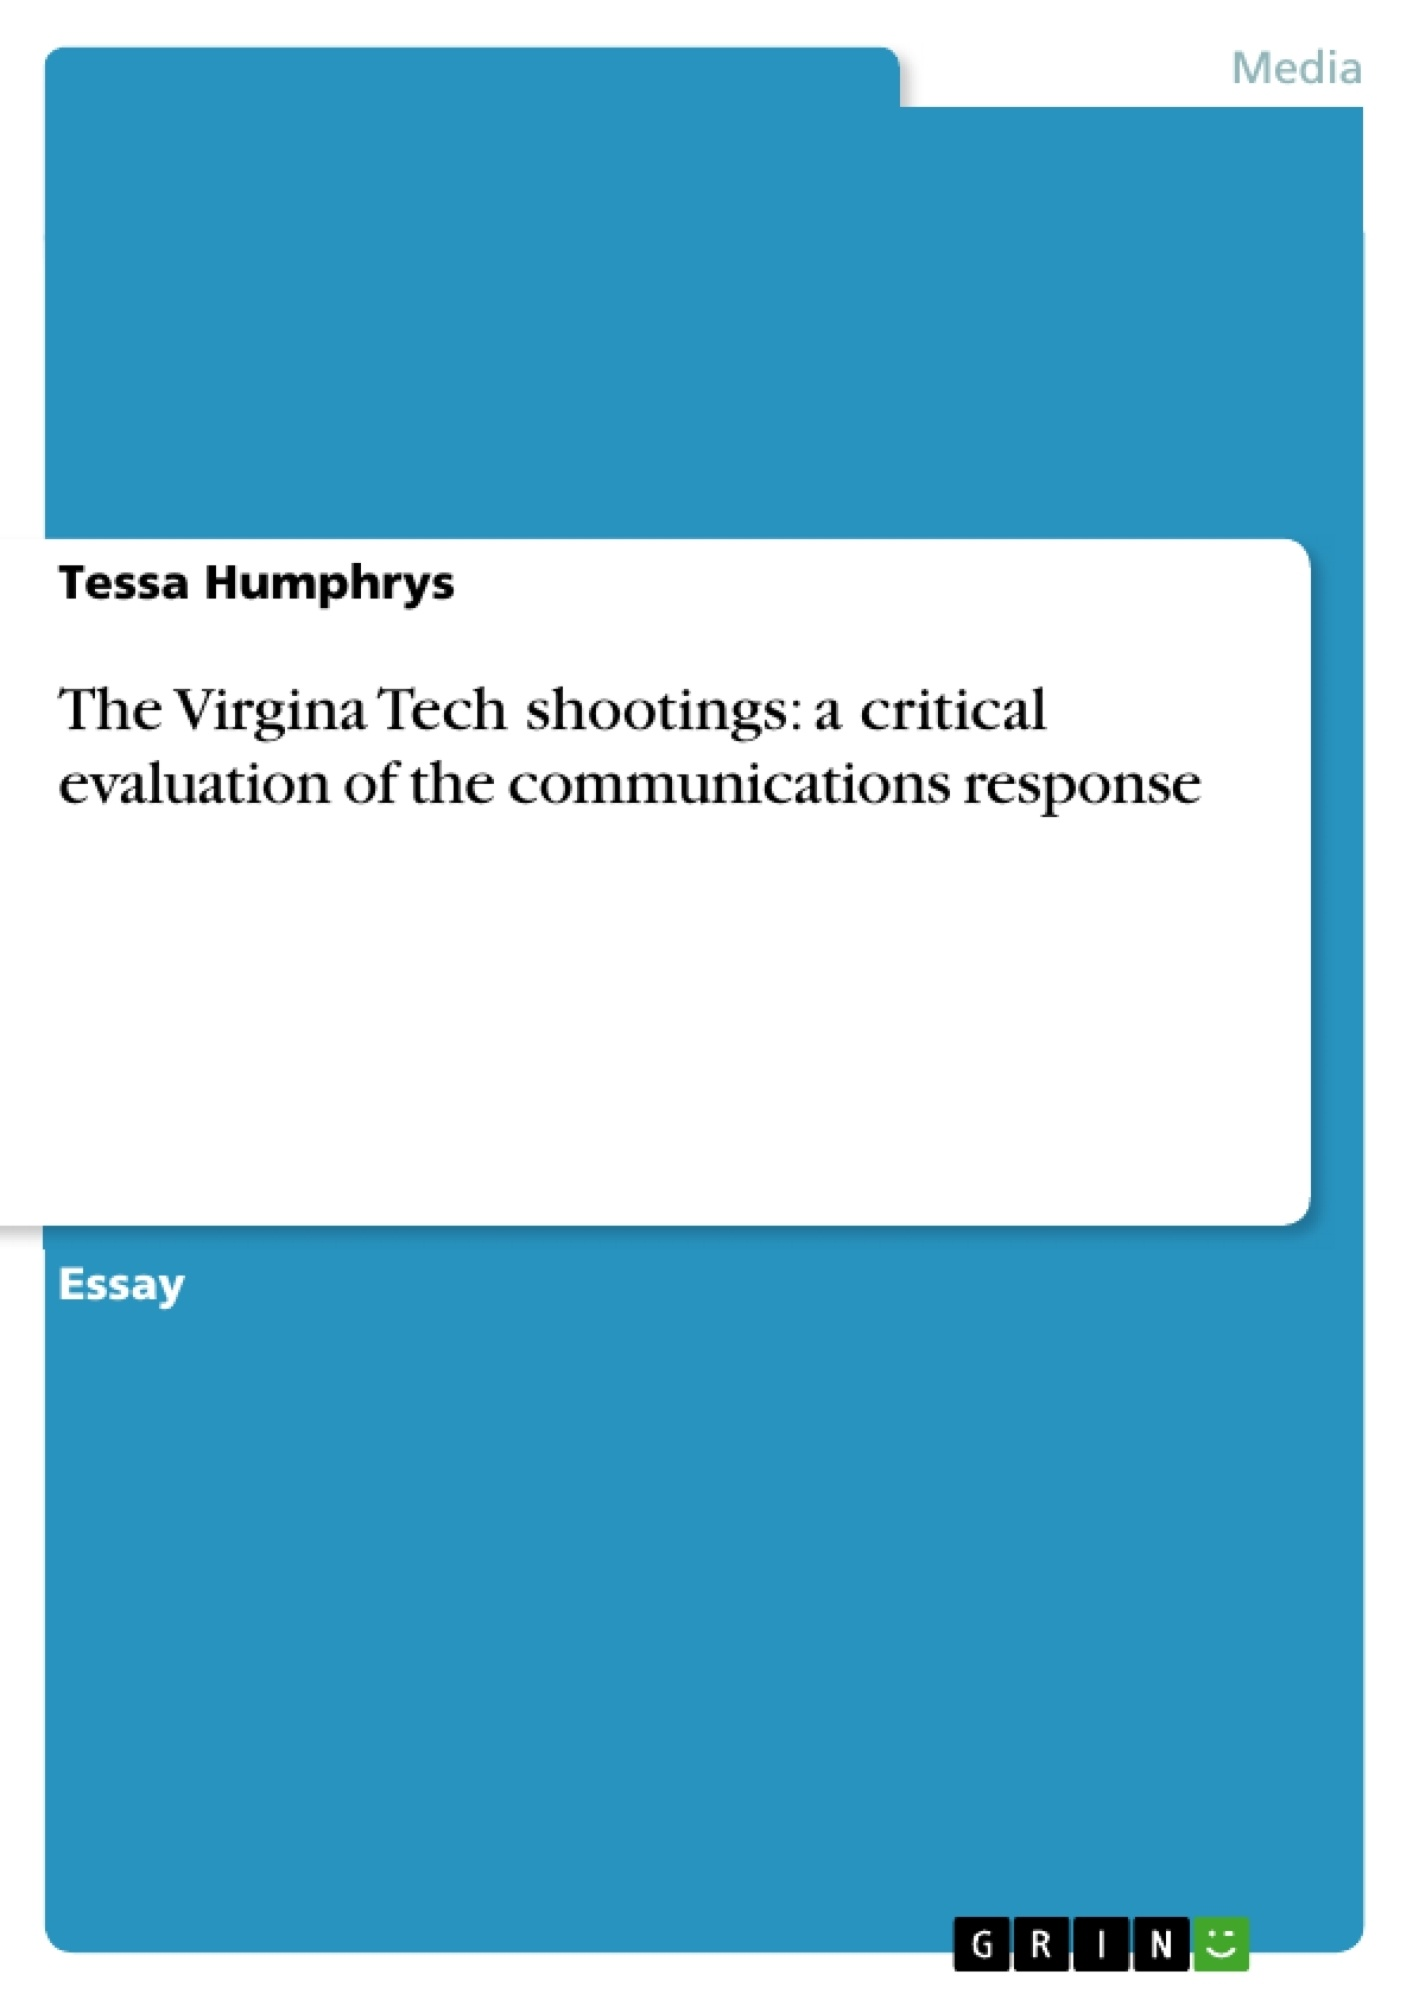 Title: The Virgina Tech shootings: a critical evaluation of the communications response